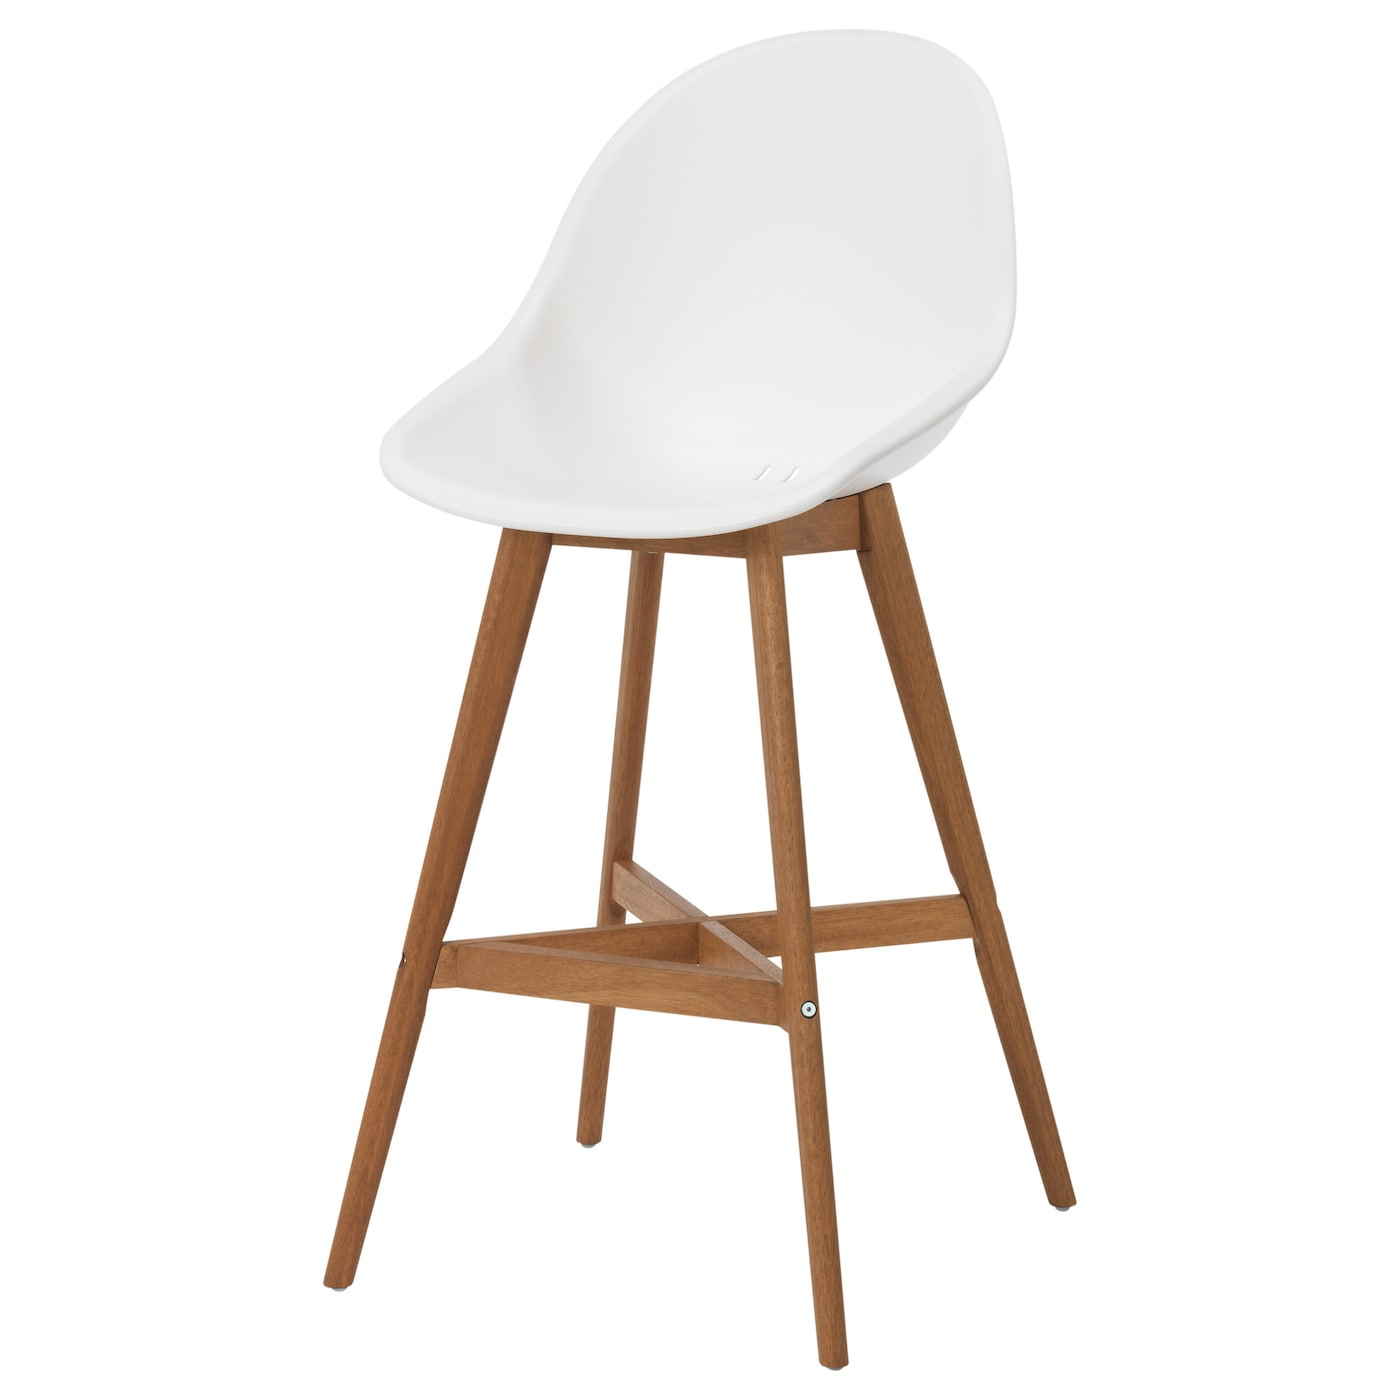 Fanbyn bar stool with backrest white 74 cm ikea for Barhocker 90 ikea